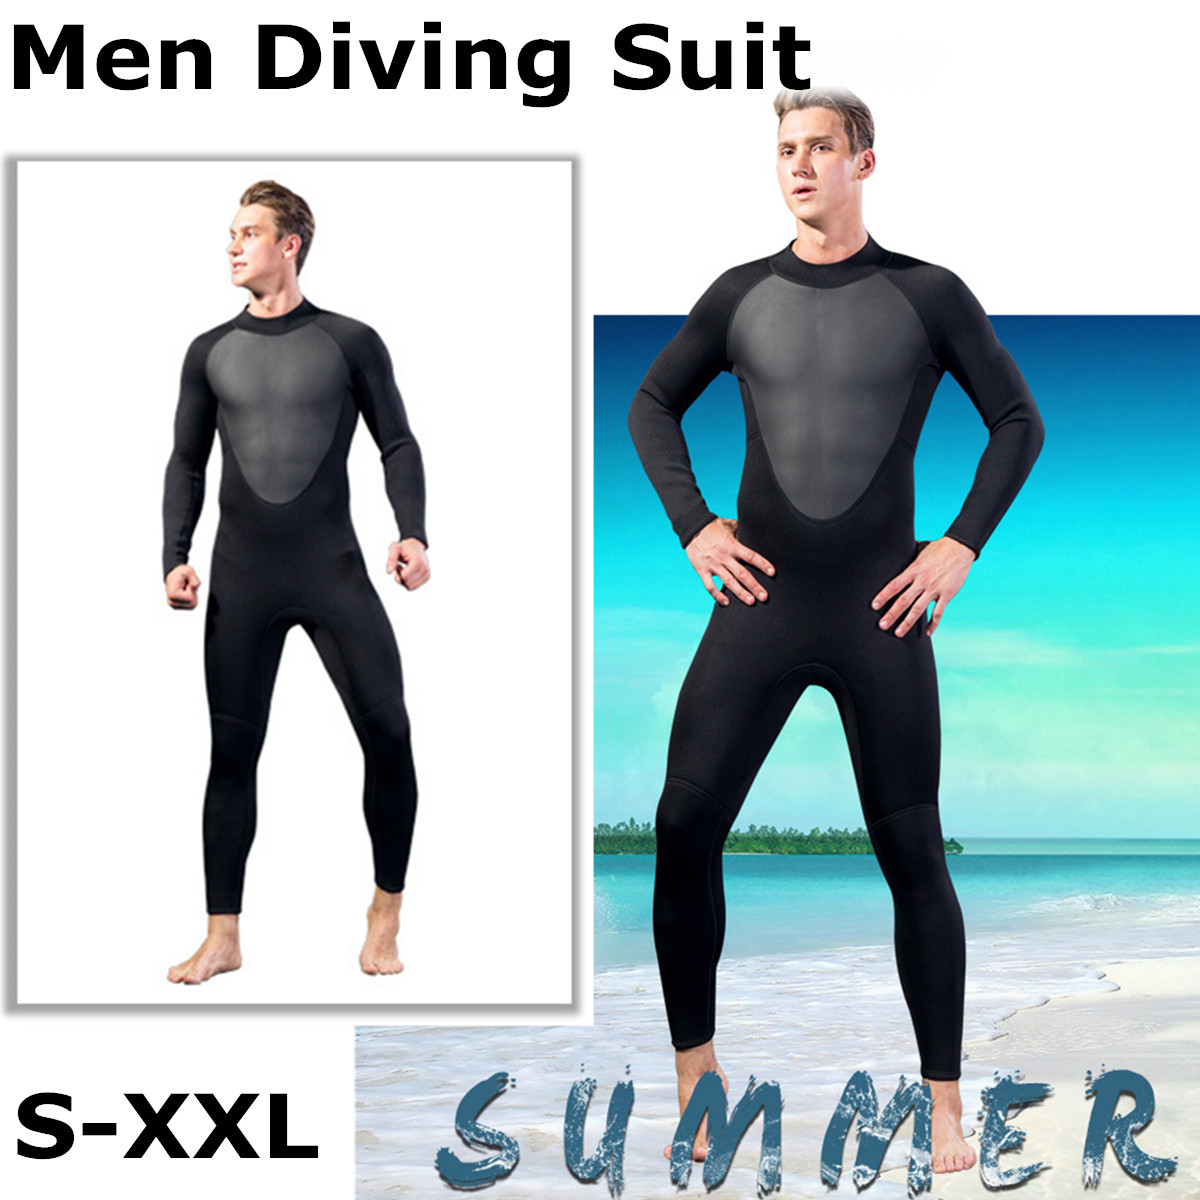 764881a4a1 Detail Feedback Questions about Full Bodysuit 3MM Mens WetSuit S XL Super  Elasticity Diving Suit For Swimming Surfing Snorkeling Elastic Adjustable  Cloth ...